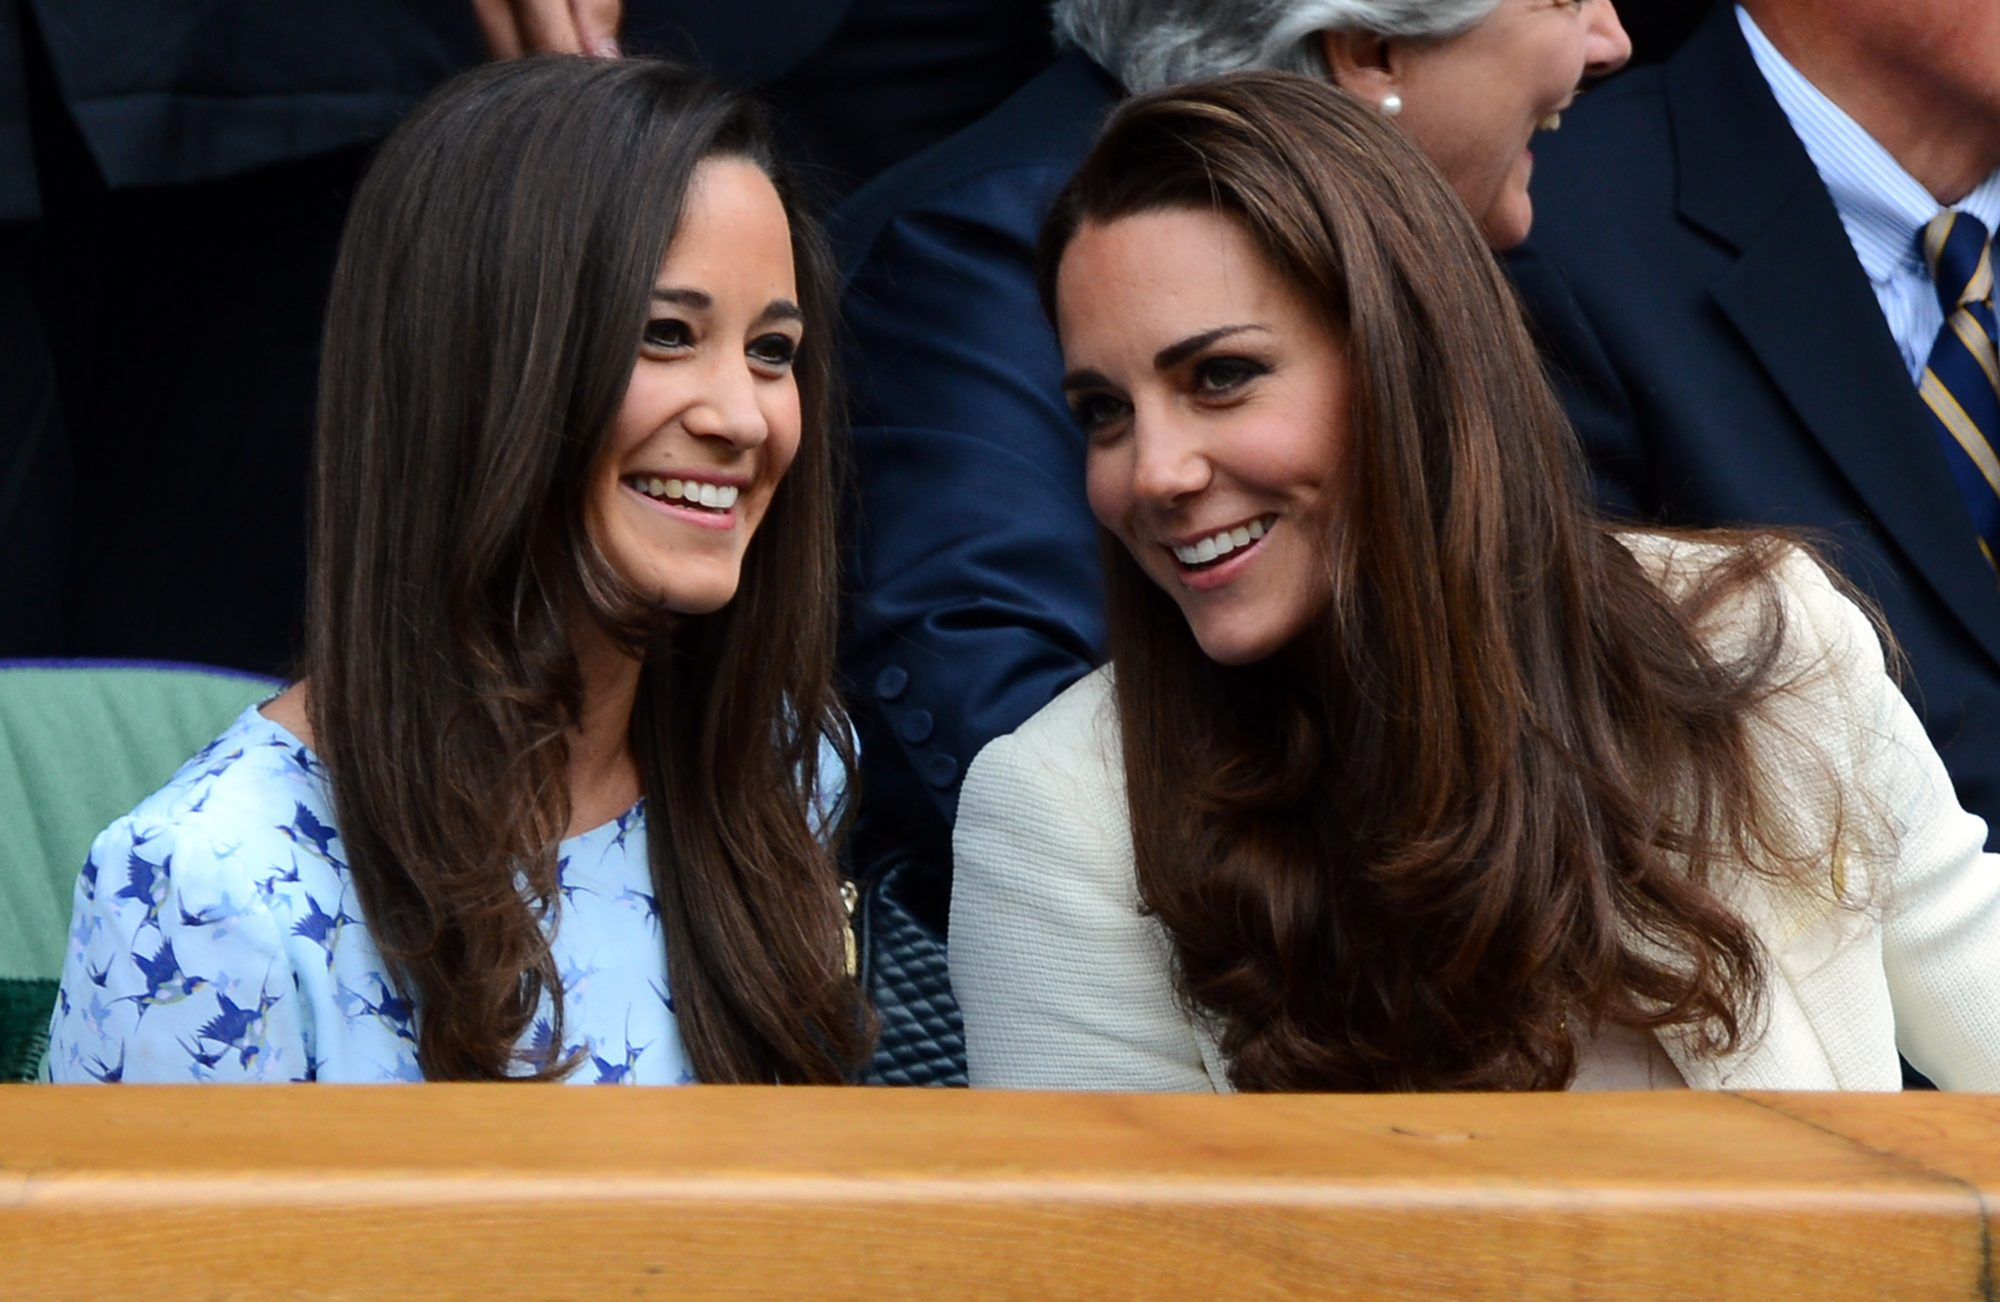 Princess Catherine and Pippa Middleton